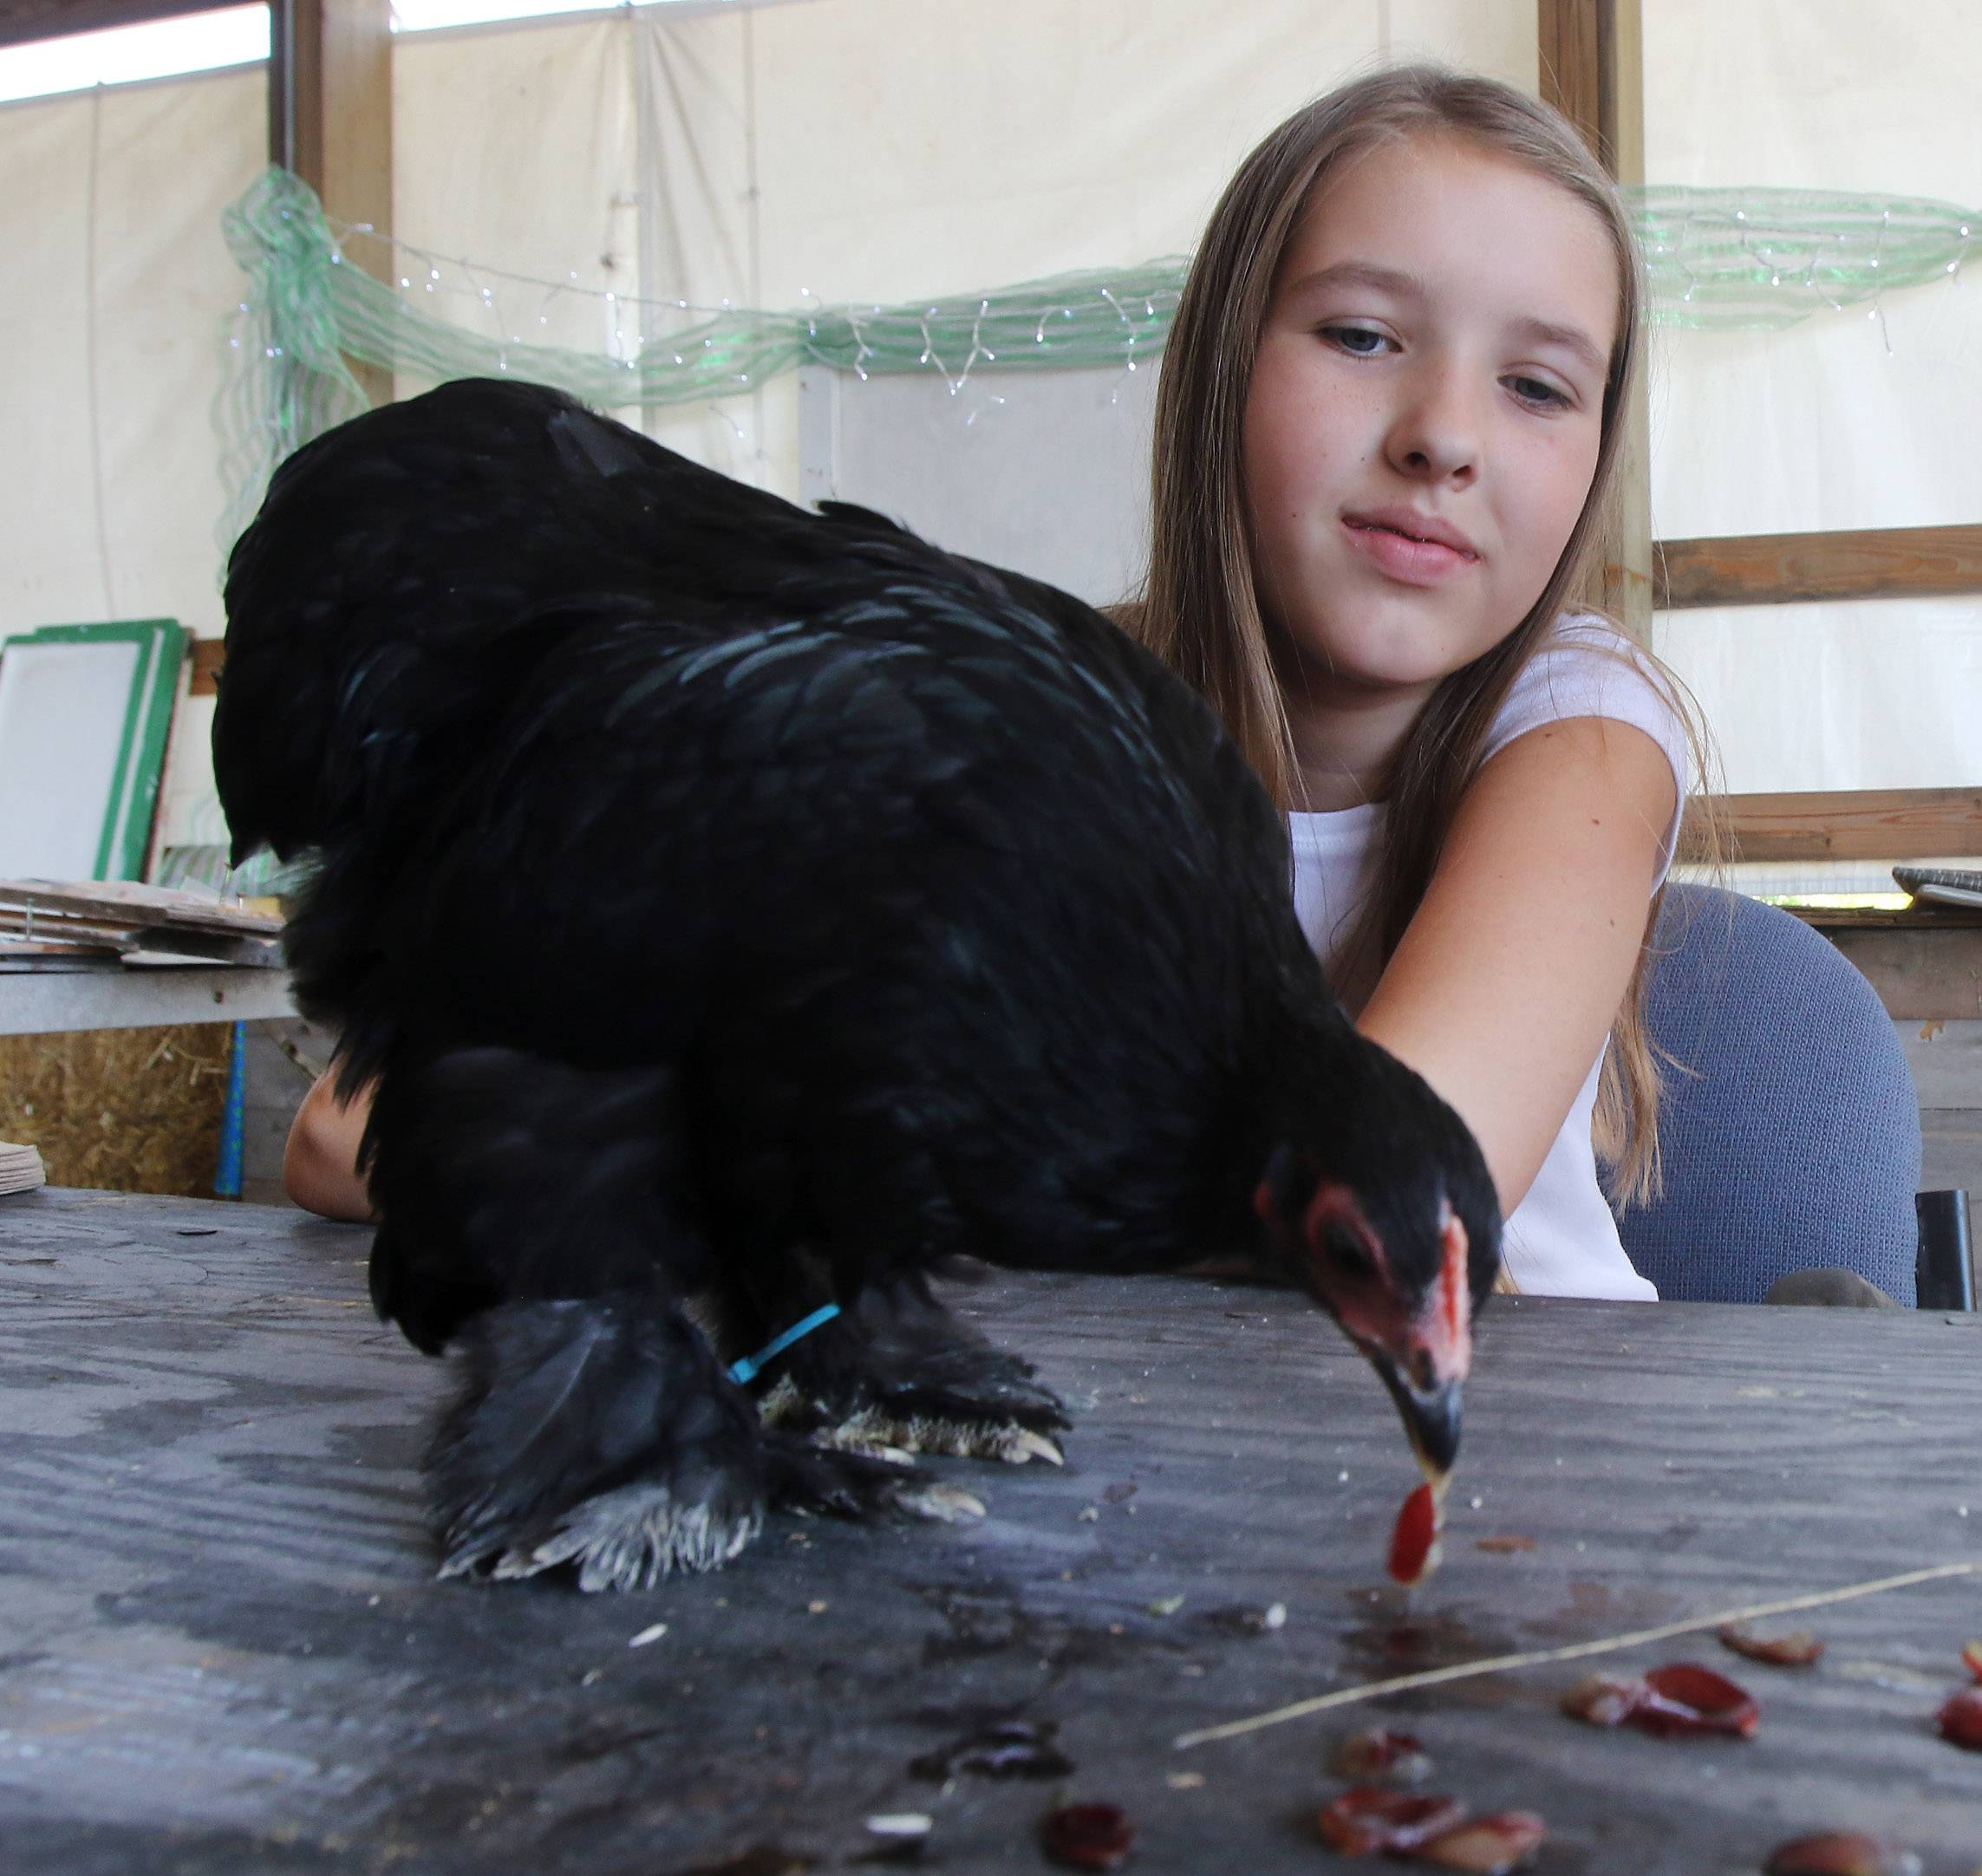 Ariana Hatfield, 12, of Wauconda, watches a chicken eat during the Lake County Fair earlier this summer. Ariana's mom supports a plan to allow Wauconda residents to keep chickens in their backyards.